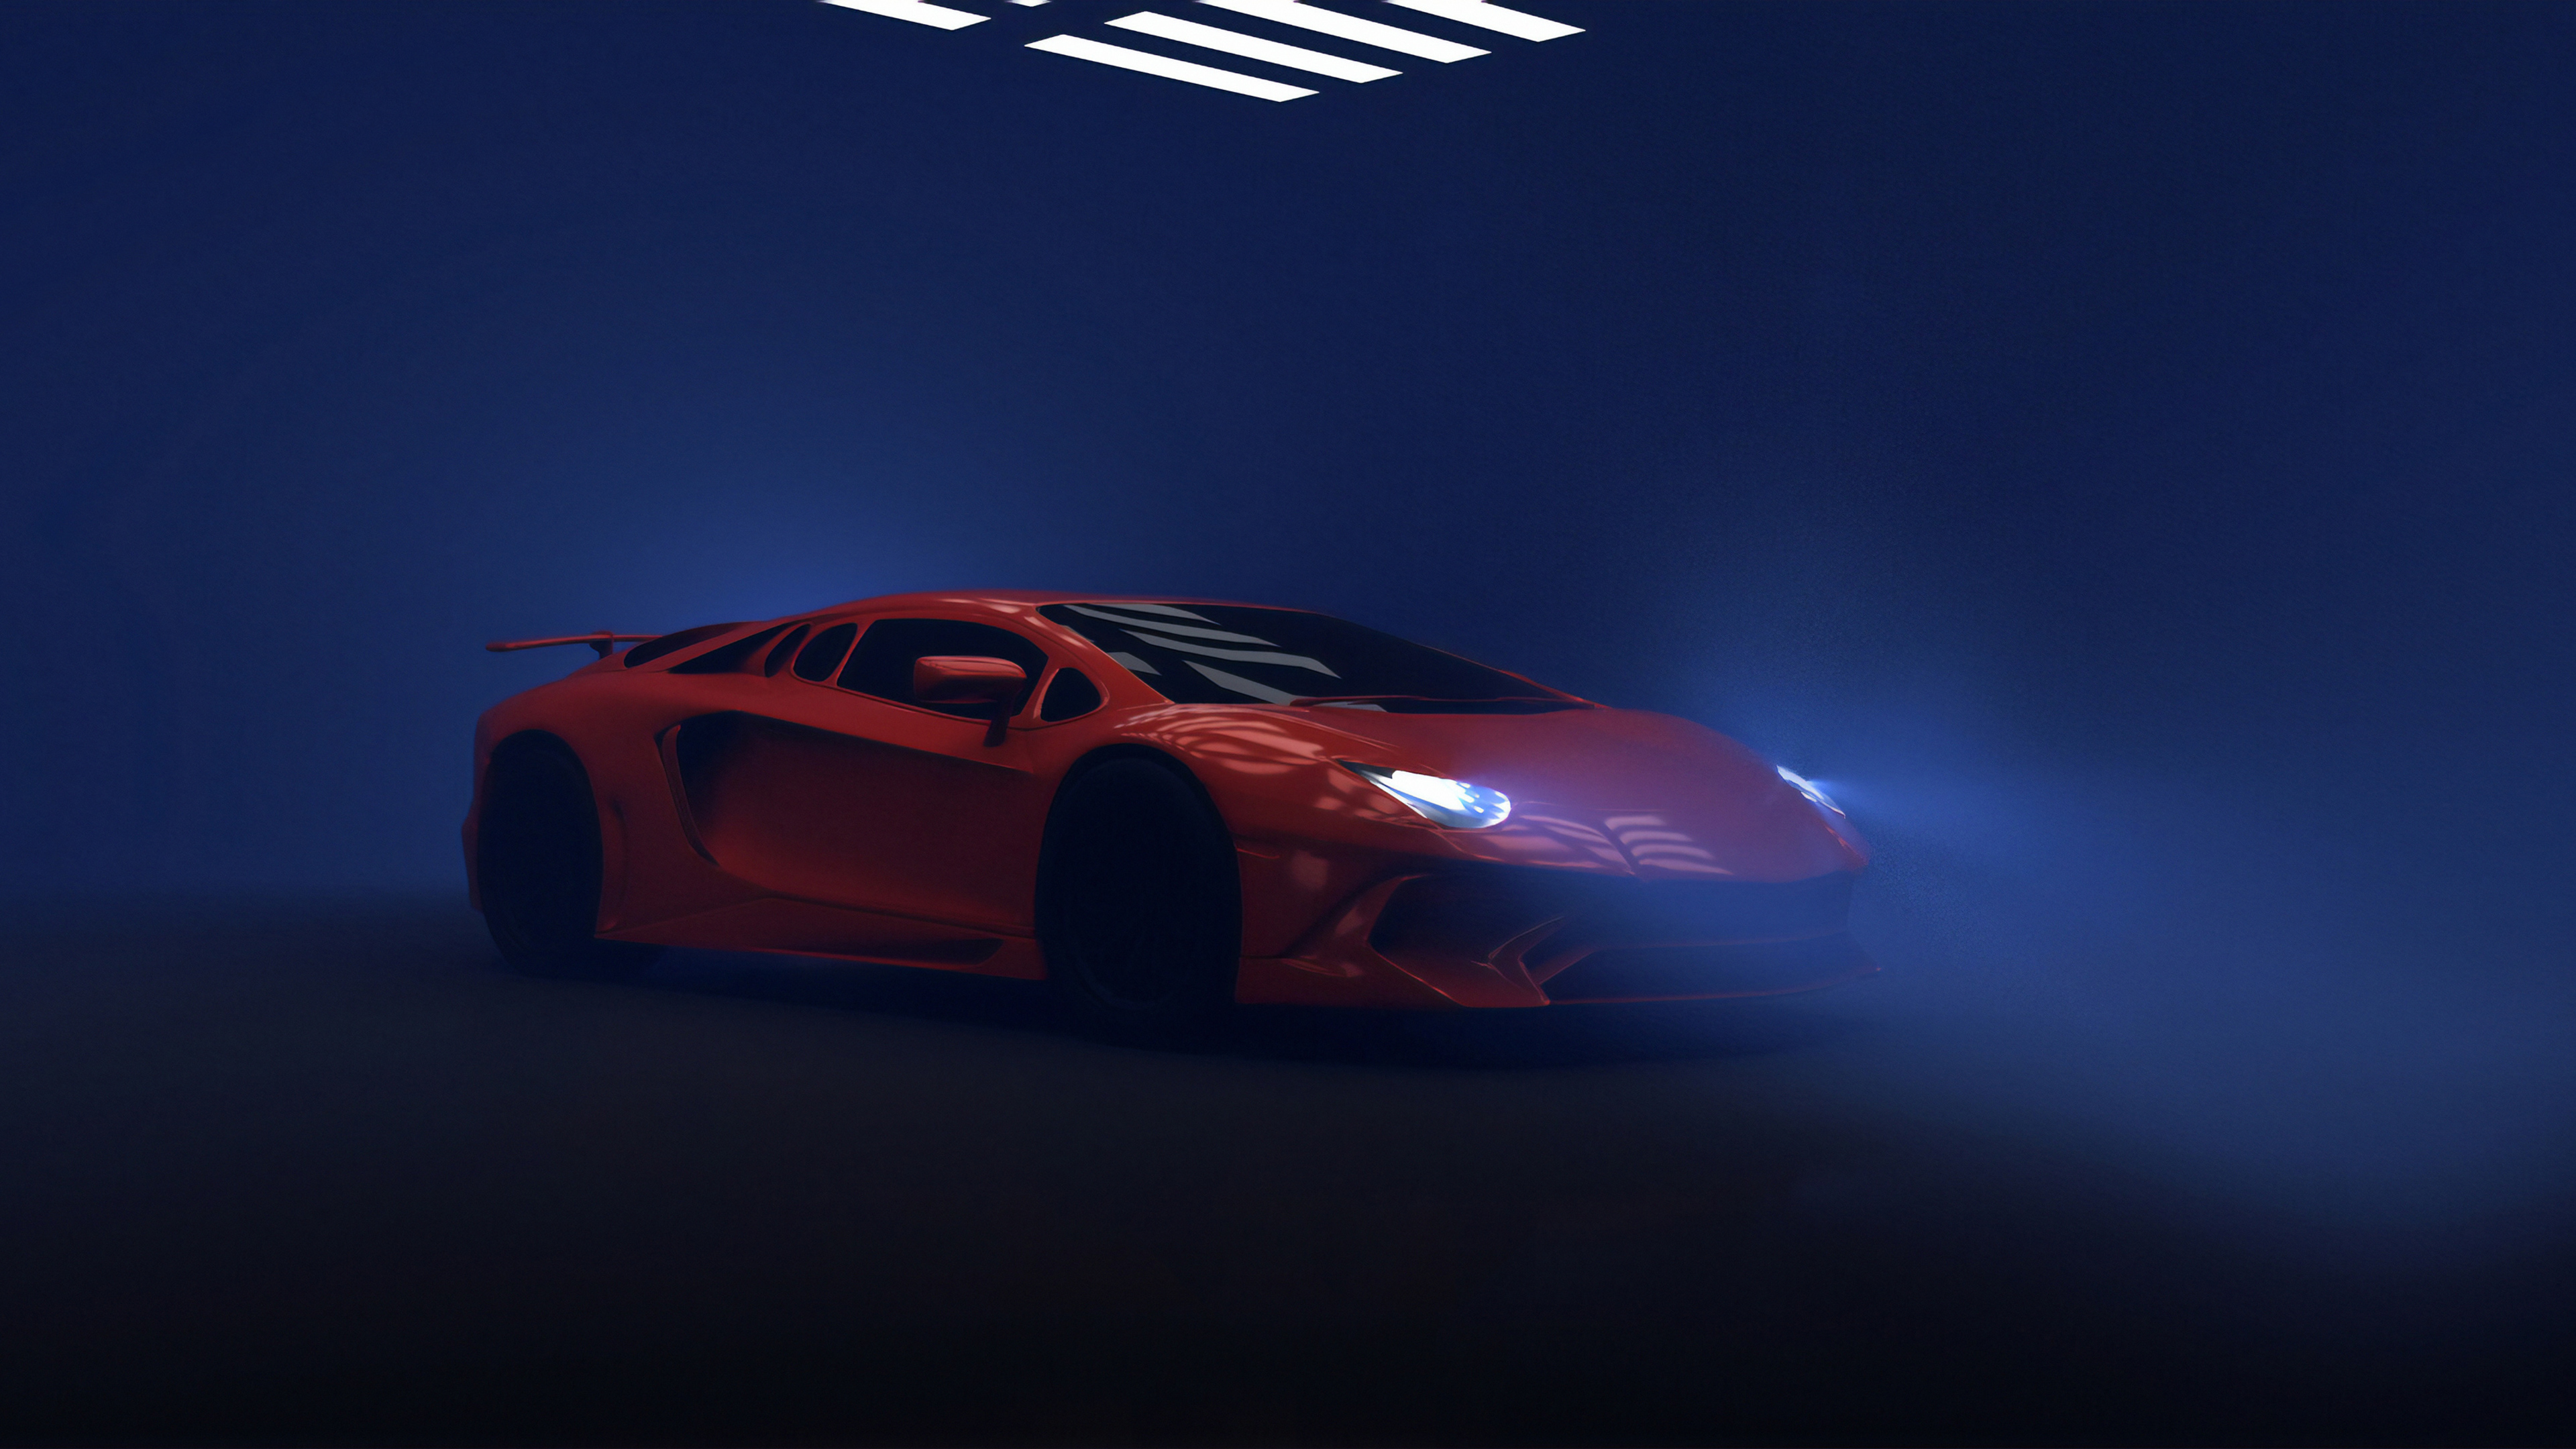 orange lambo 1572660896 - Orange Lambo - lamborghini wallpapers, hd-wallpapers, cars wallpapers, artstation wallpapers, 4k-wallpapers